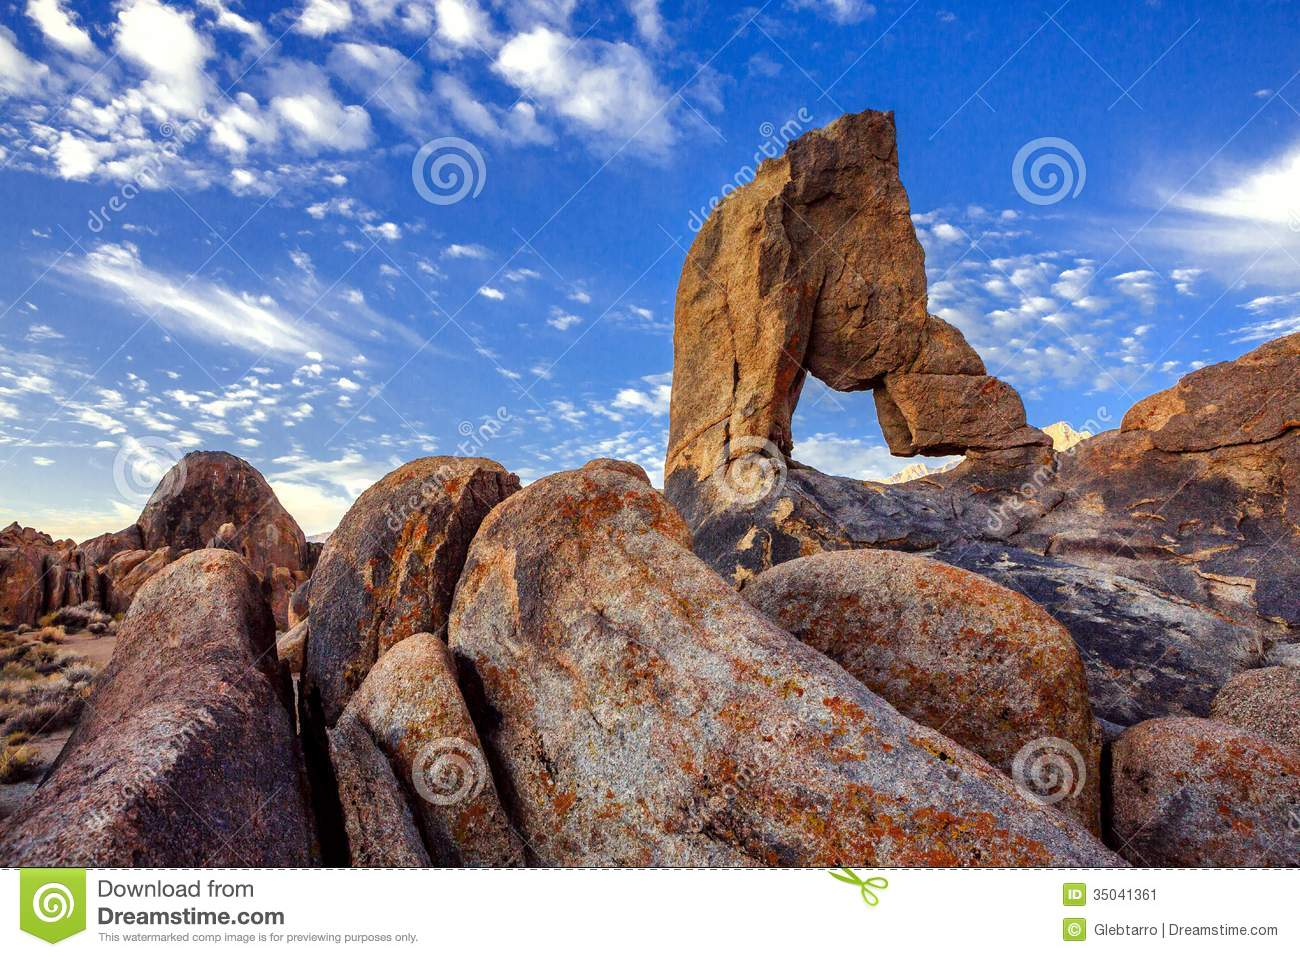 vermont in usa map with Stock Image Boot Arch Alabama Hills Landscape Eastern Sierra Nevada Mountains Near Lone Pine California Usa Image35041361 on NB0005 besides Carte massachusetts in addition 8093798095 additionally Niger River Map in addition 5963289565.